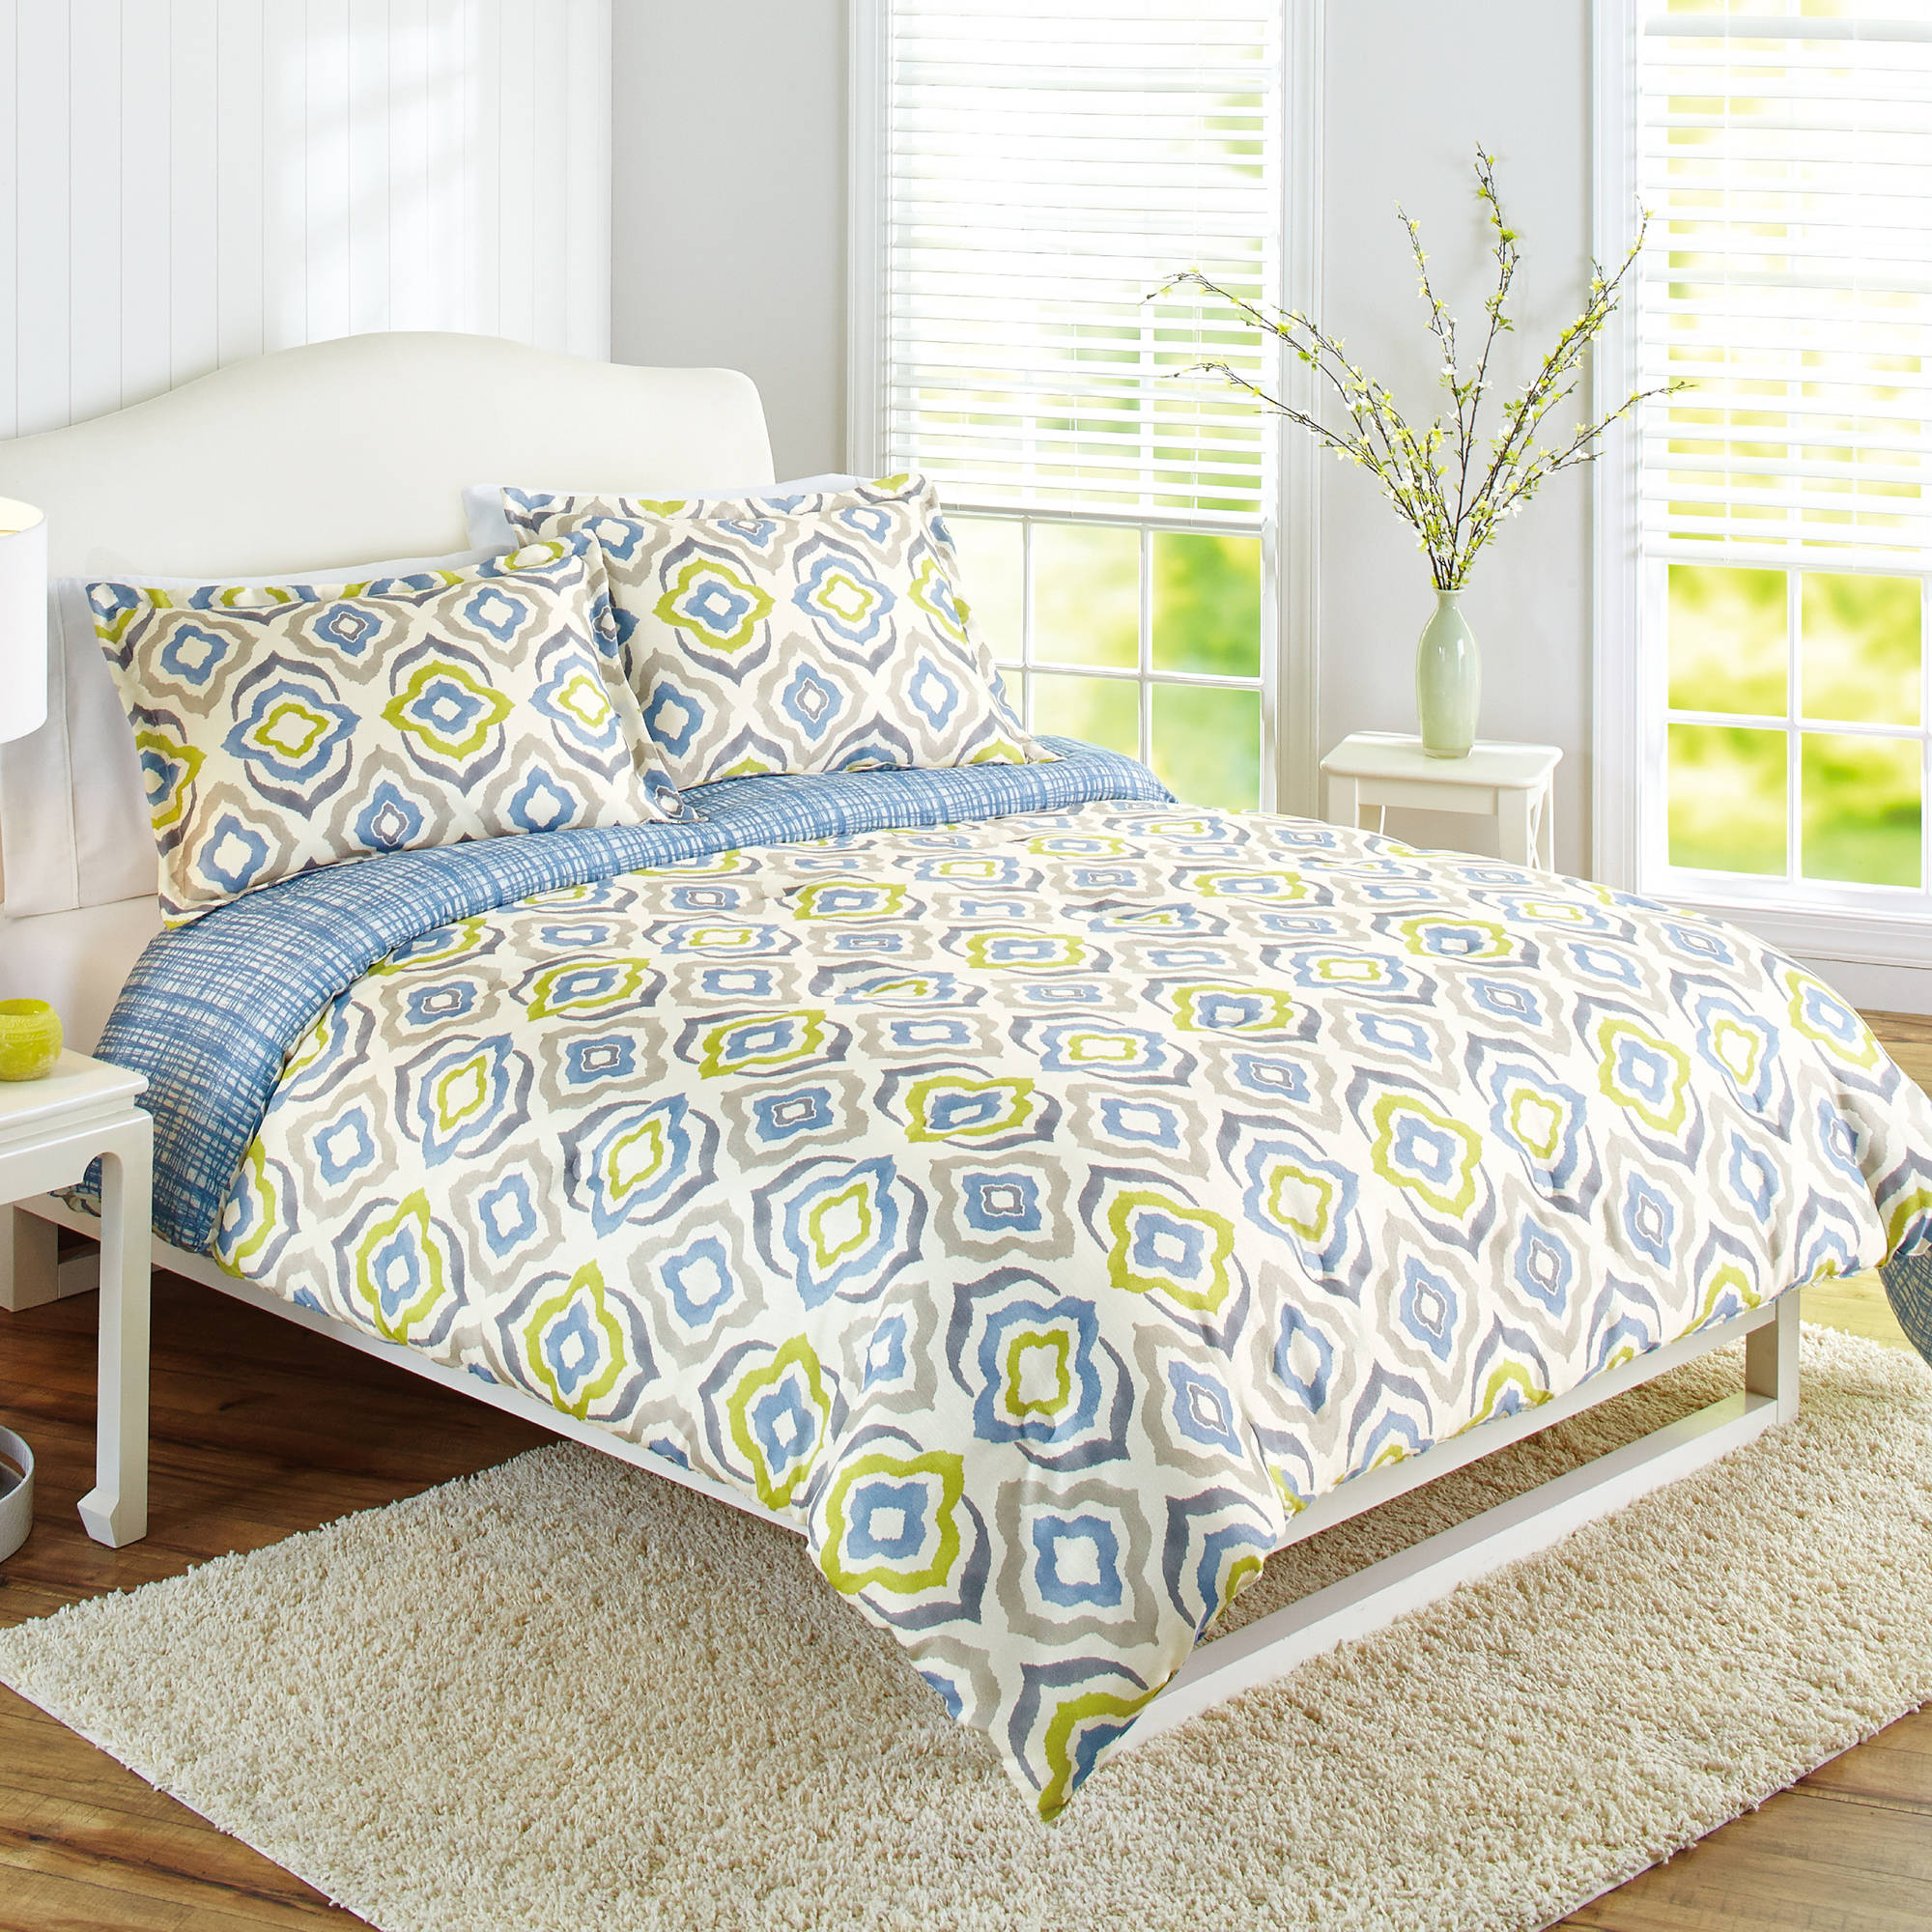 Better Homes and Gardens Elements Multi-Color Geometric 3-Piece Bedding Comforter Set